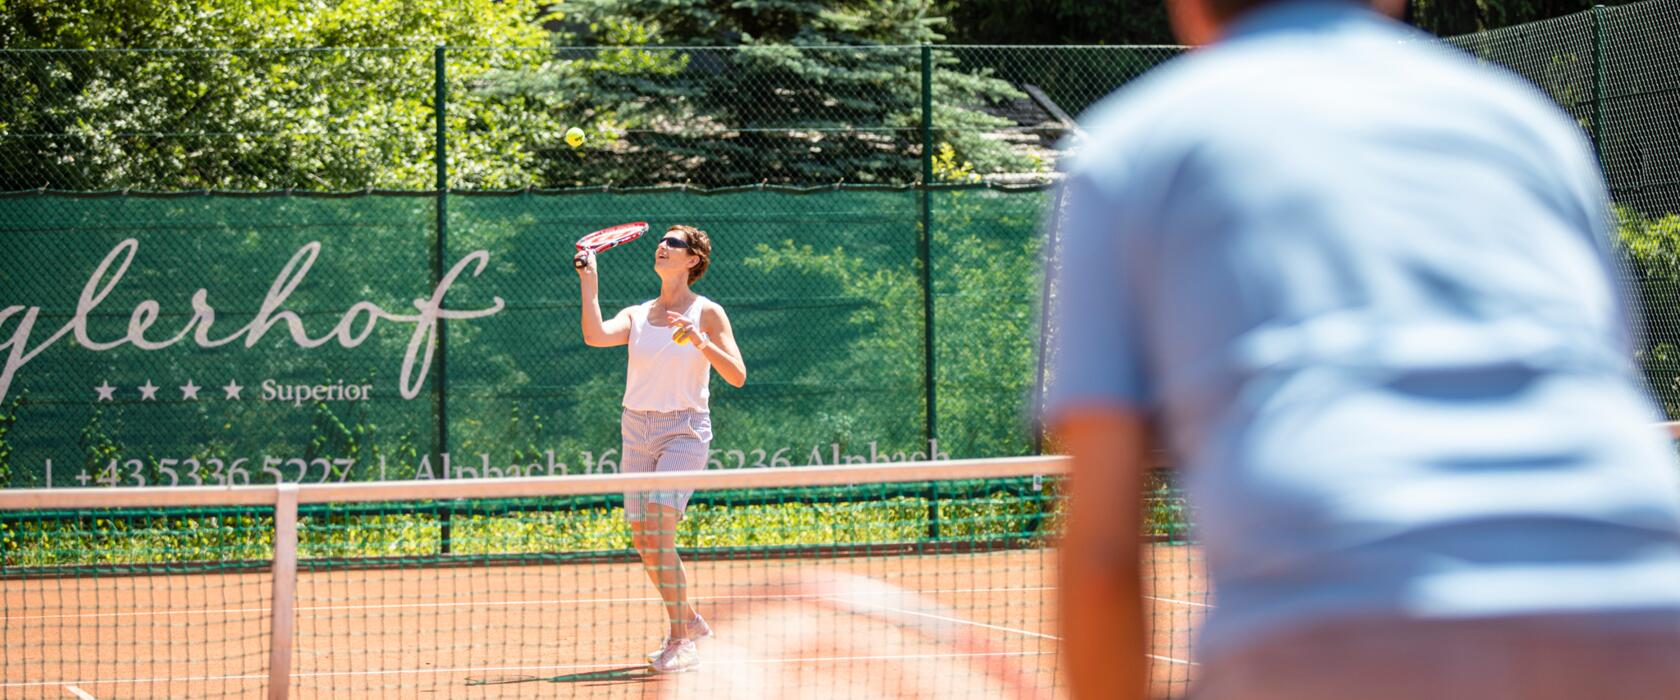 play tennis in active holiday tyrol